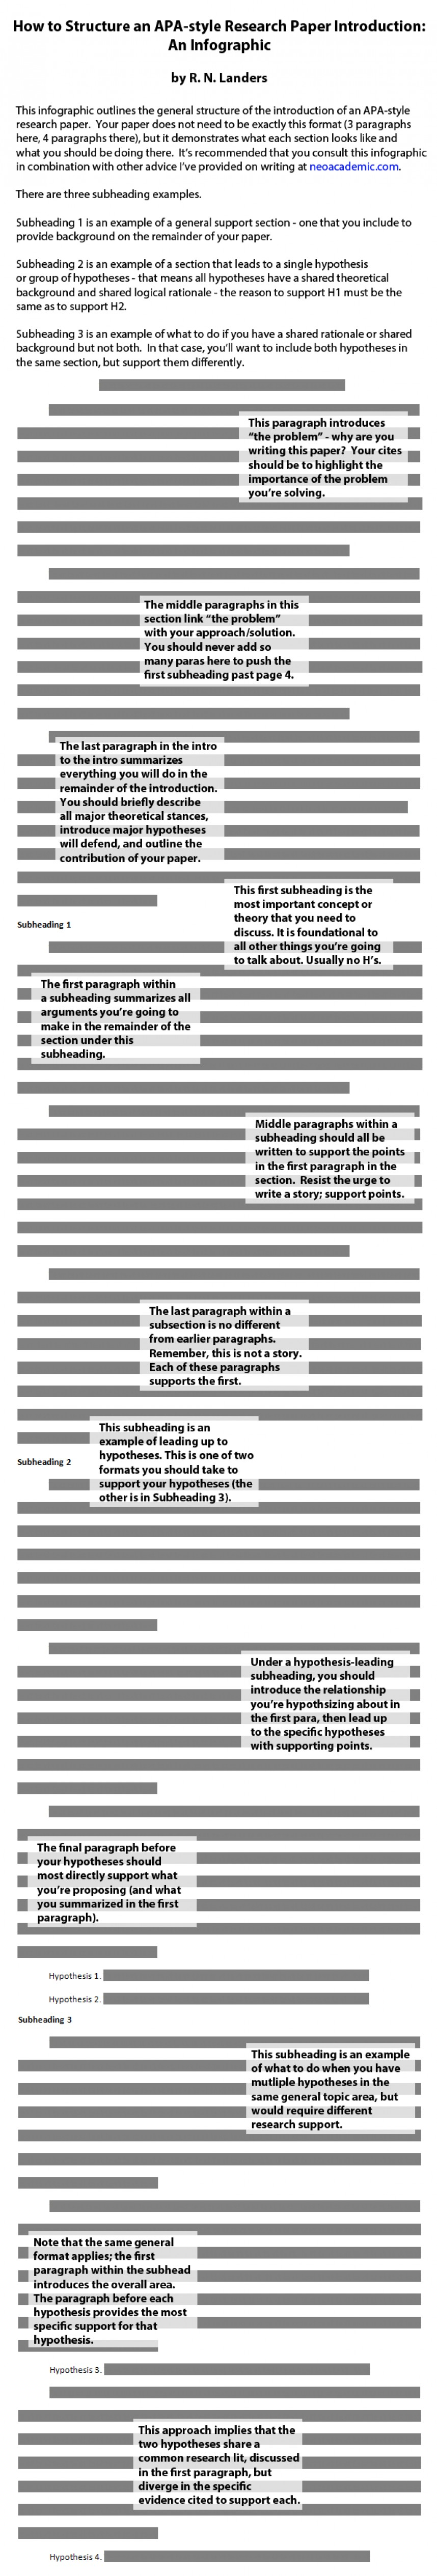 002 Intro Infographic2 Research Paper How To Write An Introduction For Fearsome A Apa